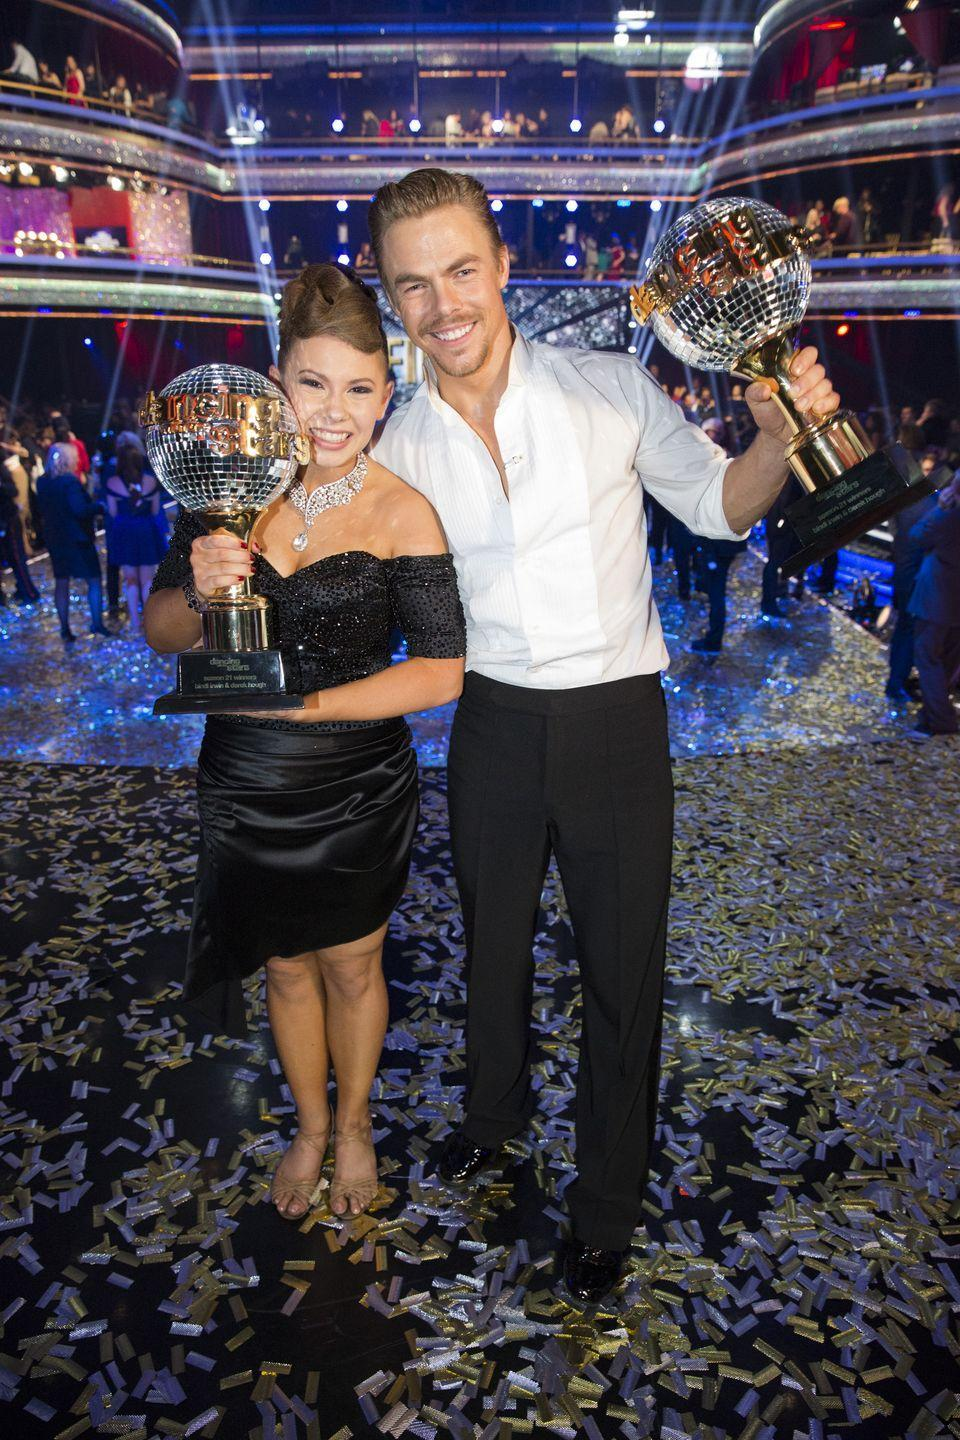 "<p>In addition to their salary and, of course, the title of <em>Dancing with the Stars </em>champion, the winning team <a href=""https://ftw.usatoday.com/2017/05/laurie-hernandez-keeps-the-mirror-ball-trophy-from-dwts-in-the-center-of-her-room"" rel=""nofollow noopener"" target=""_blank"" data-ylk=""slk:receives the Mirrorball Trophy"" class=""link rapid-noclick-resp"">receives the Mirrorball Trophy</a>, which they can take home and display wherever they like. </p>"